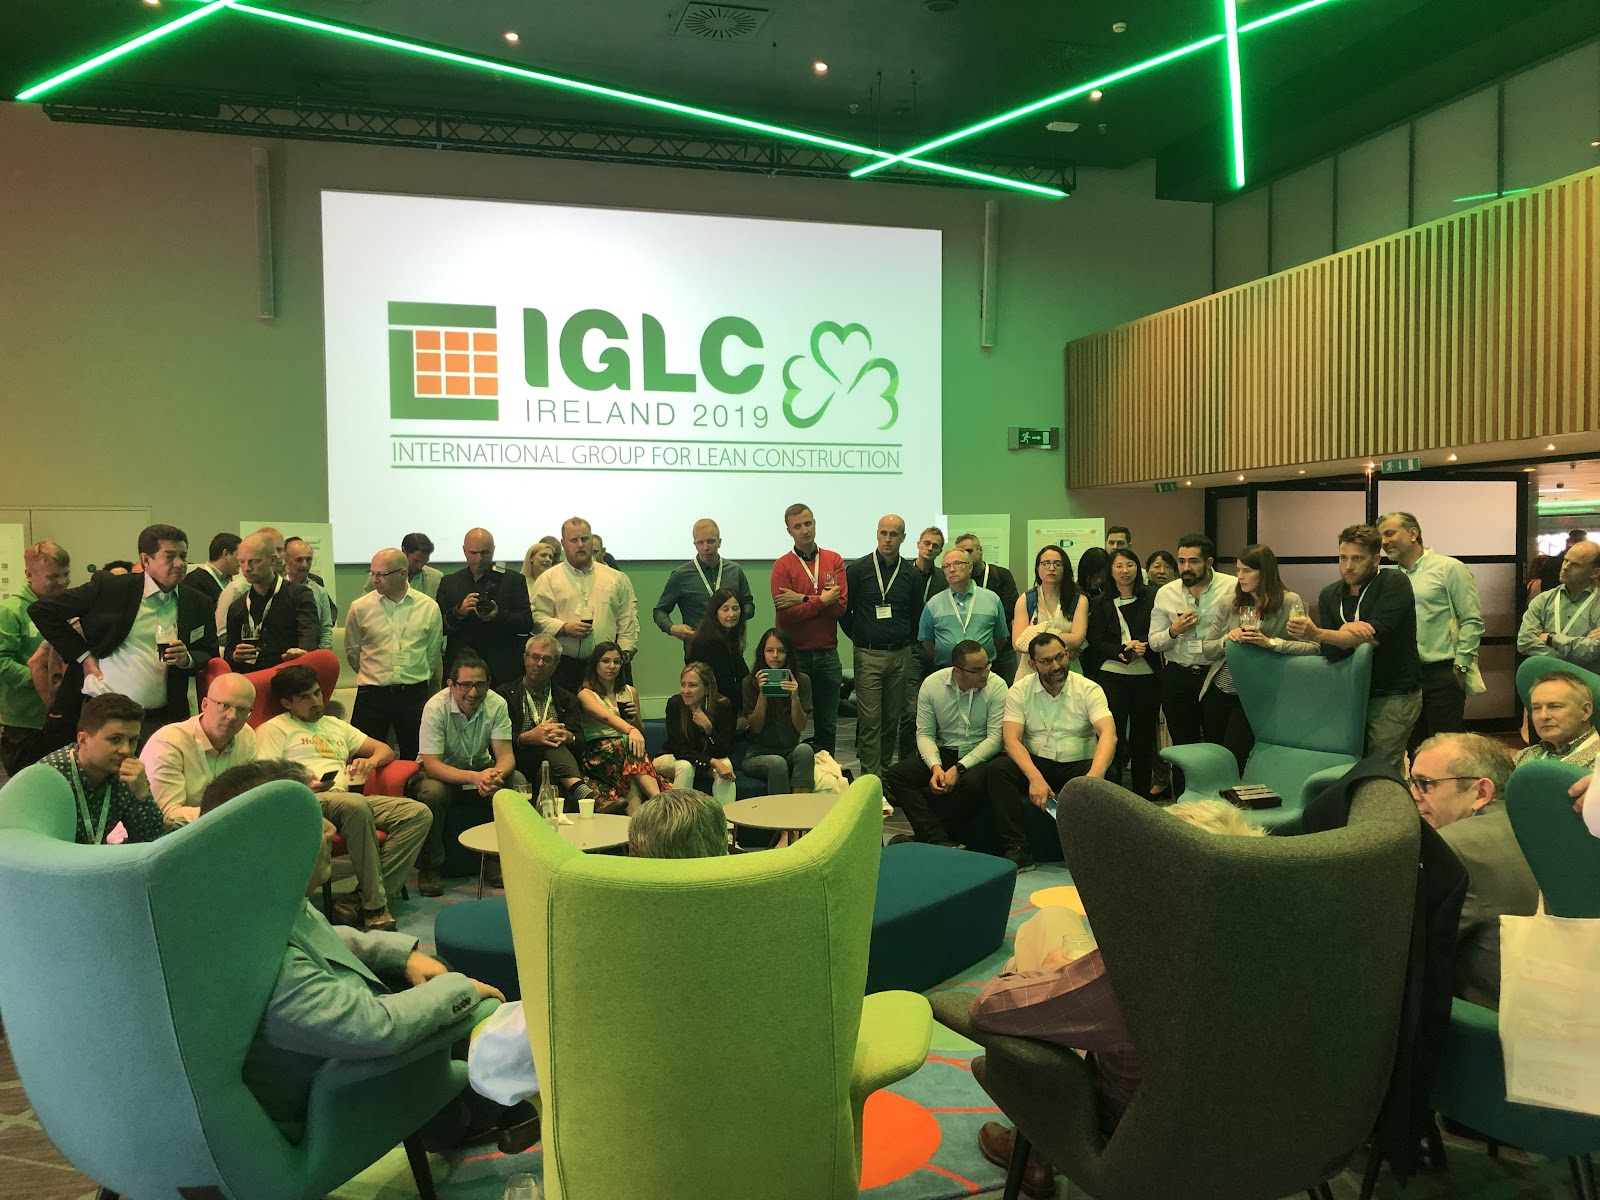 Highlighting 12 Papers from the IGLC 2019 Conference